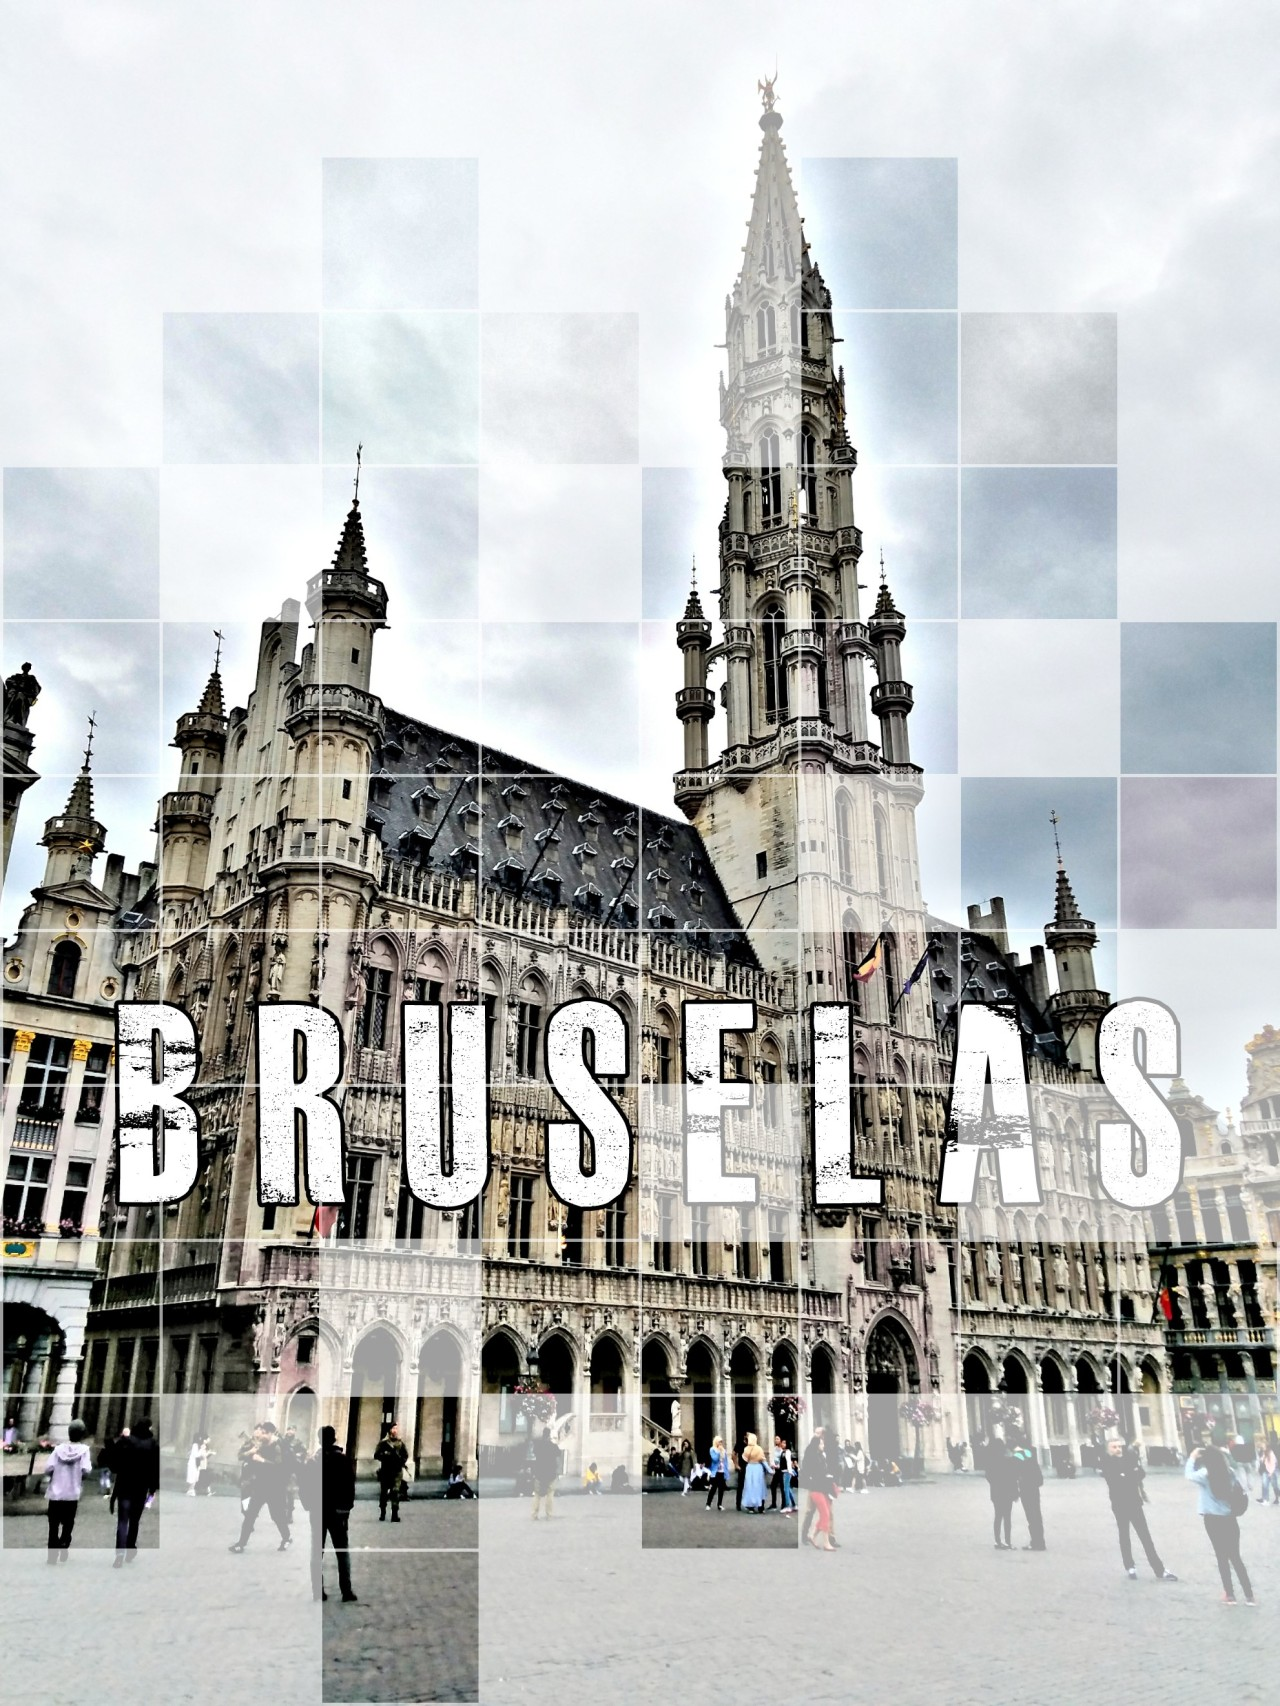 Bruselas, la gran capital europea